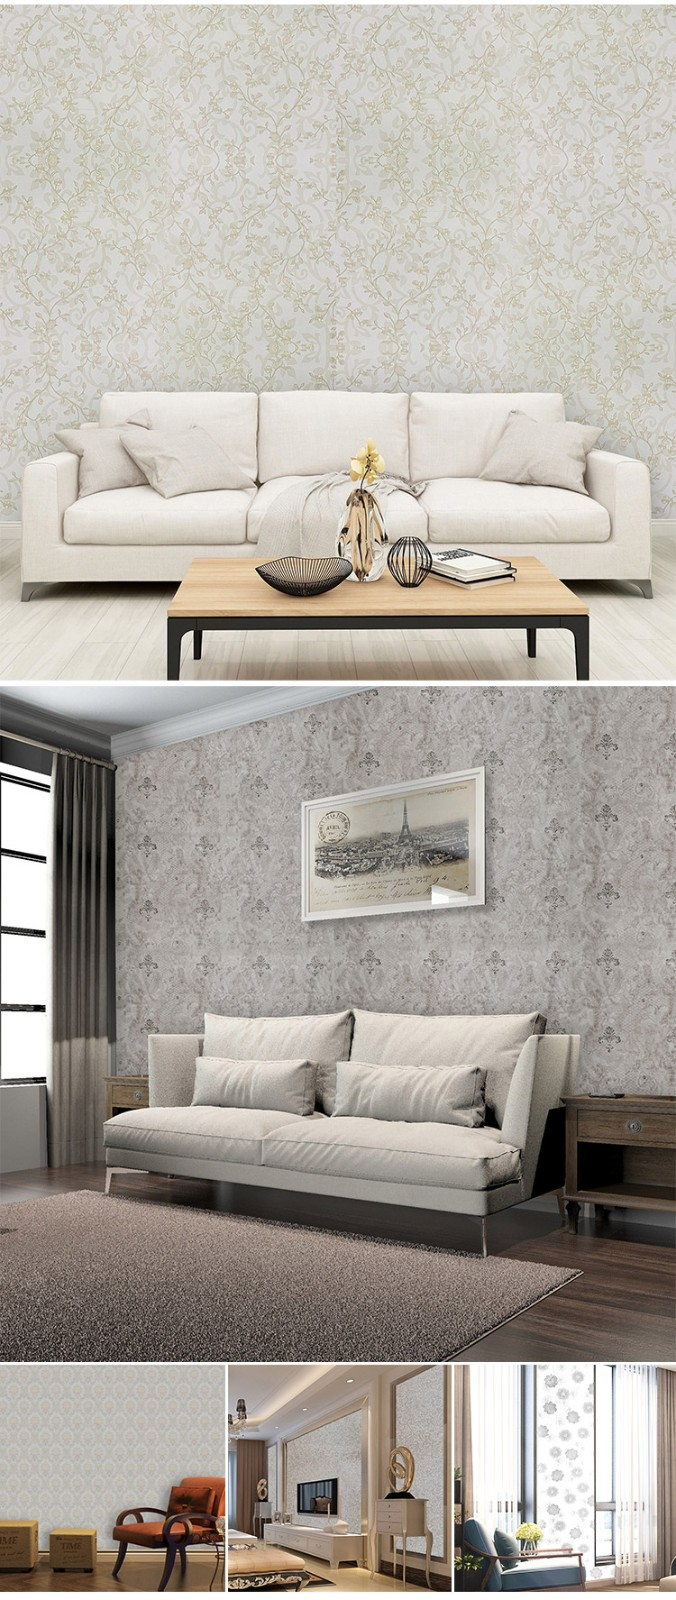 SUNYE quality durable wallpaper best manufacturer for bottle-5